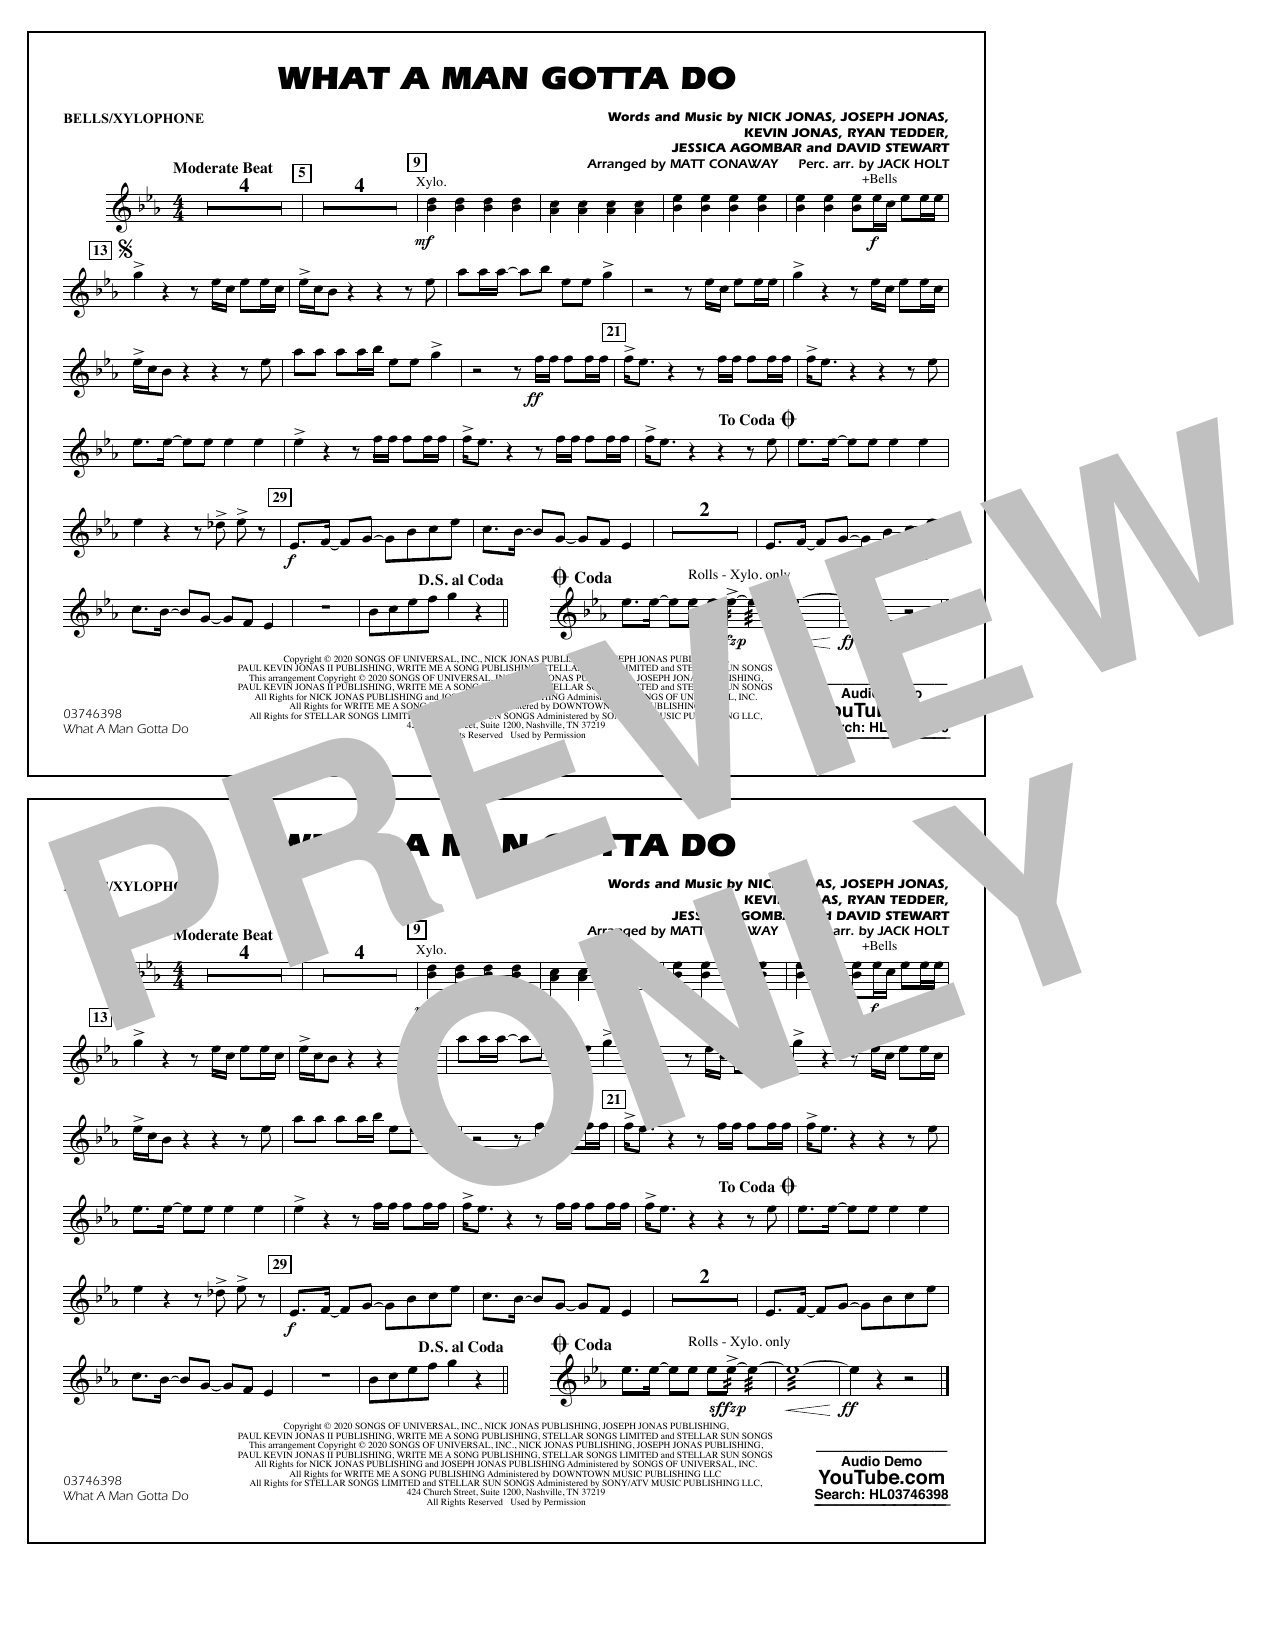 What a Man Gotta Do (arr. Jack Holt and Matt Conaway) - Bells/Xylophone Sheet Music